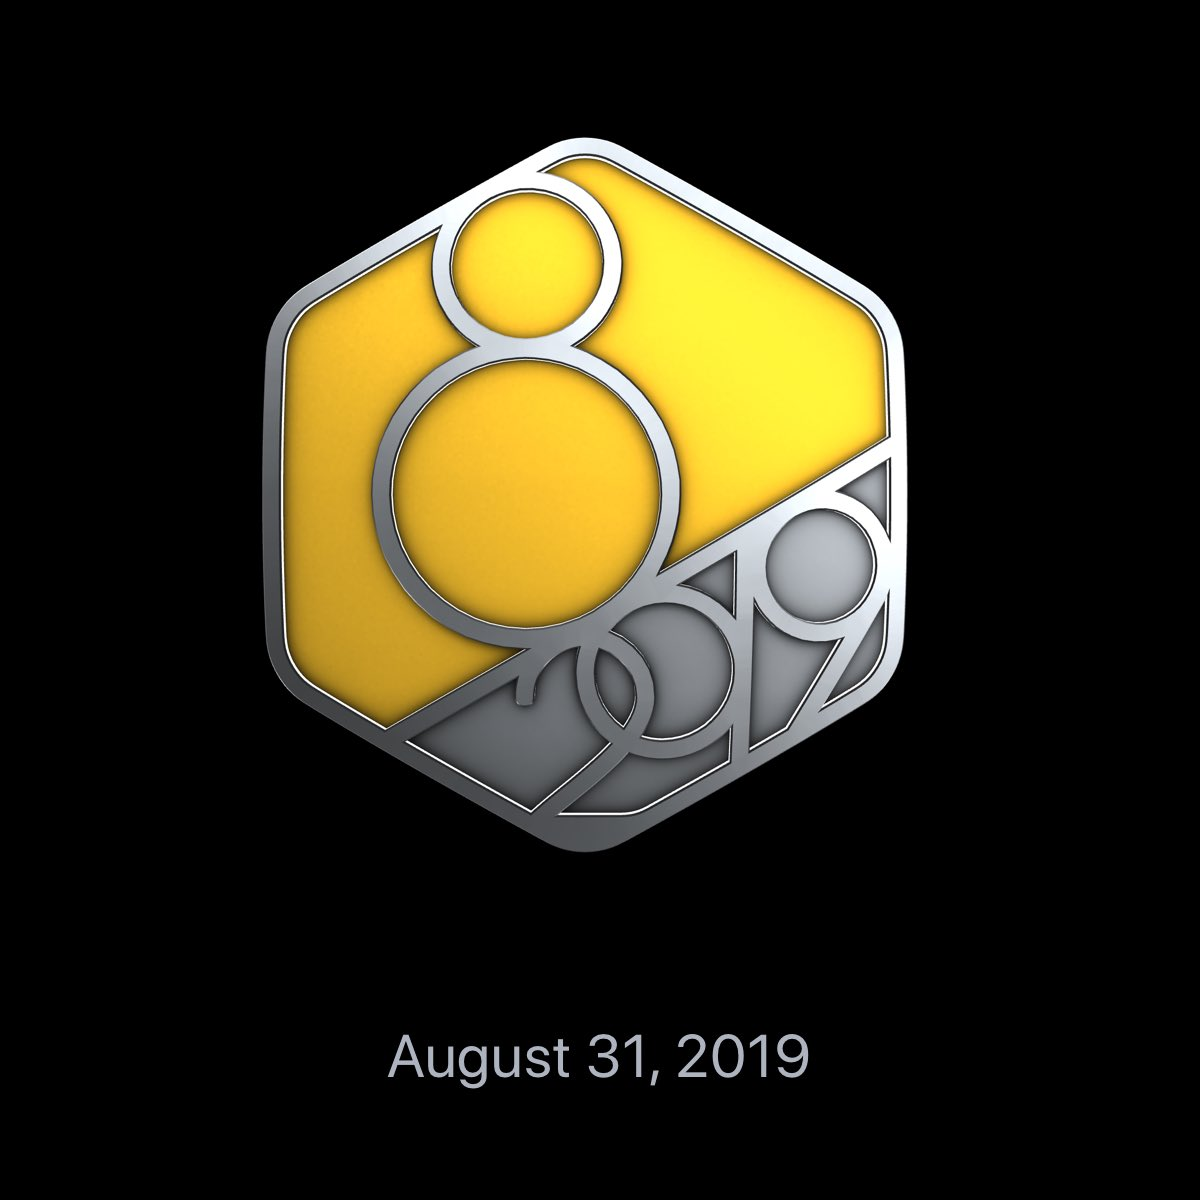 I earned this award by winning my August Challenge! #AppleWatchSeries4 <br>http://pic.twitter.com/xPrdth5BzC